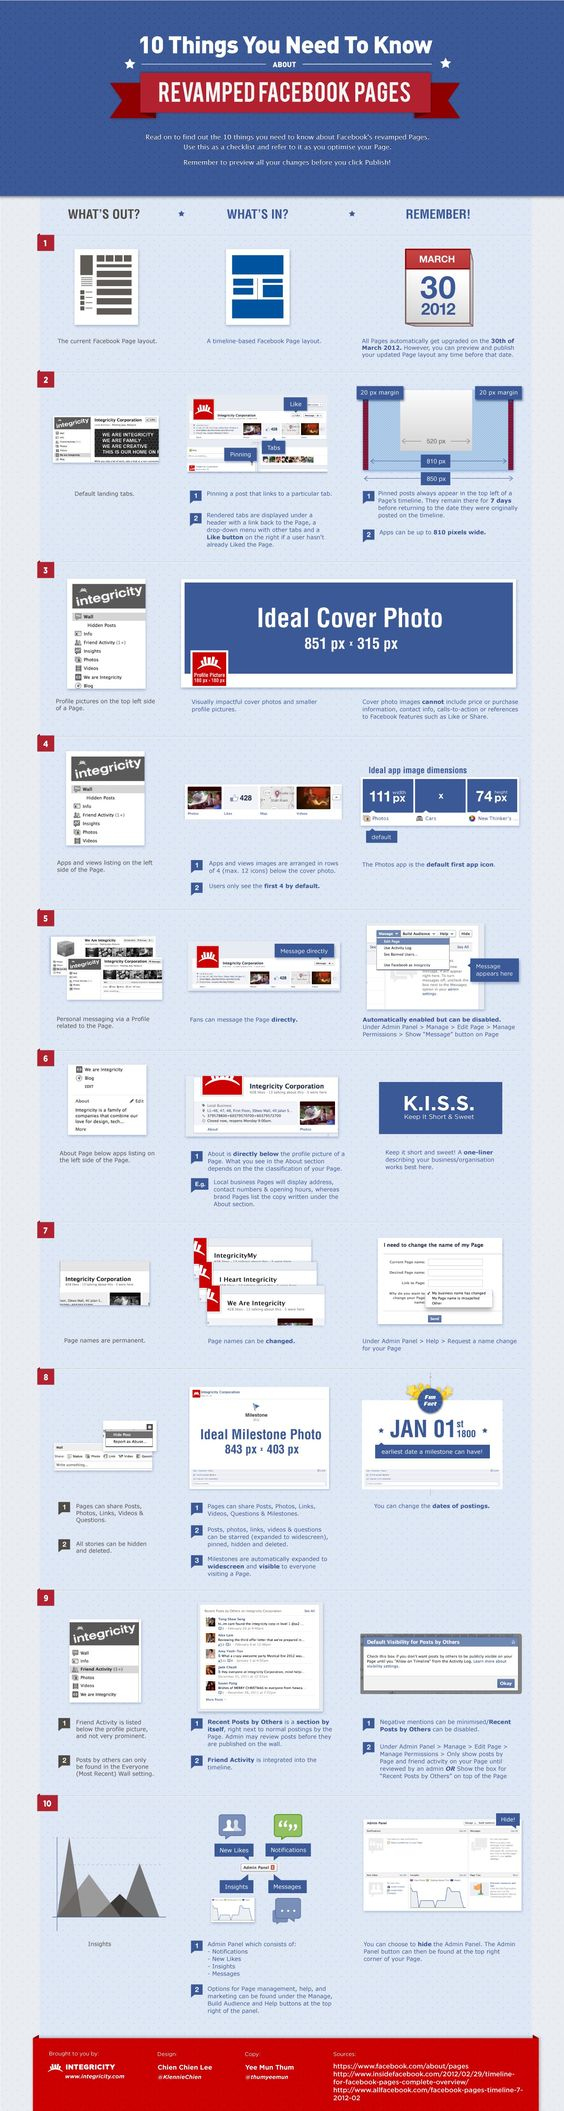 The brand new #Facebook pages: ten things you need to know #infografica